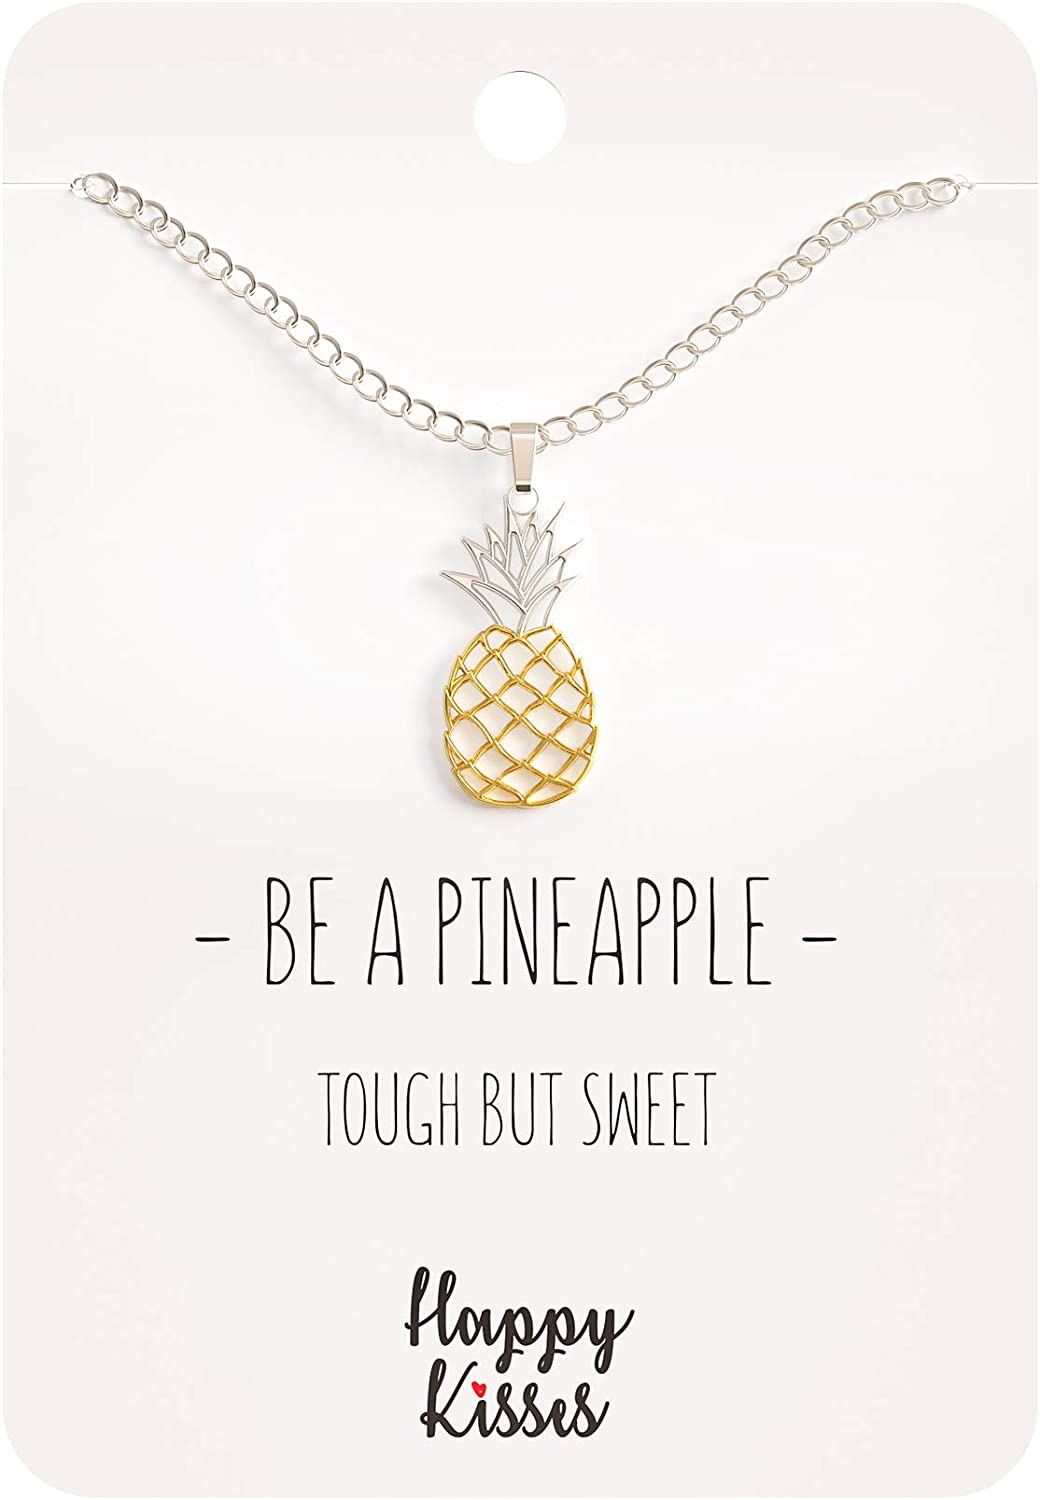 Happy Kisses Pineapple Necklace – Be A Pineapple Pendant – Message Card